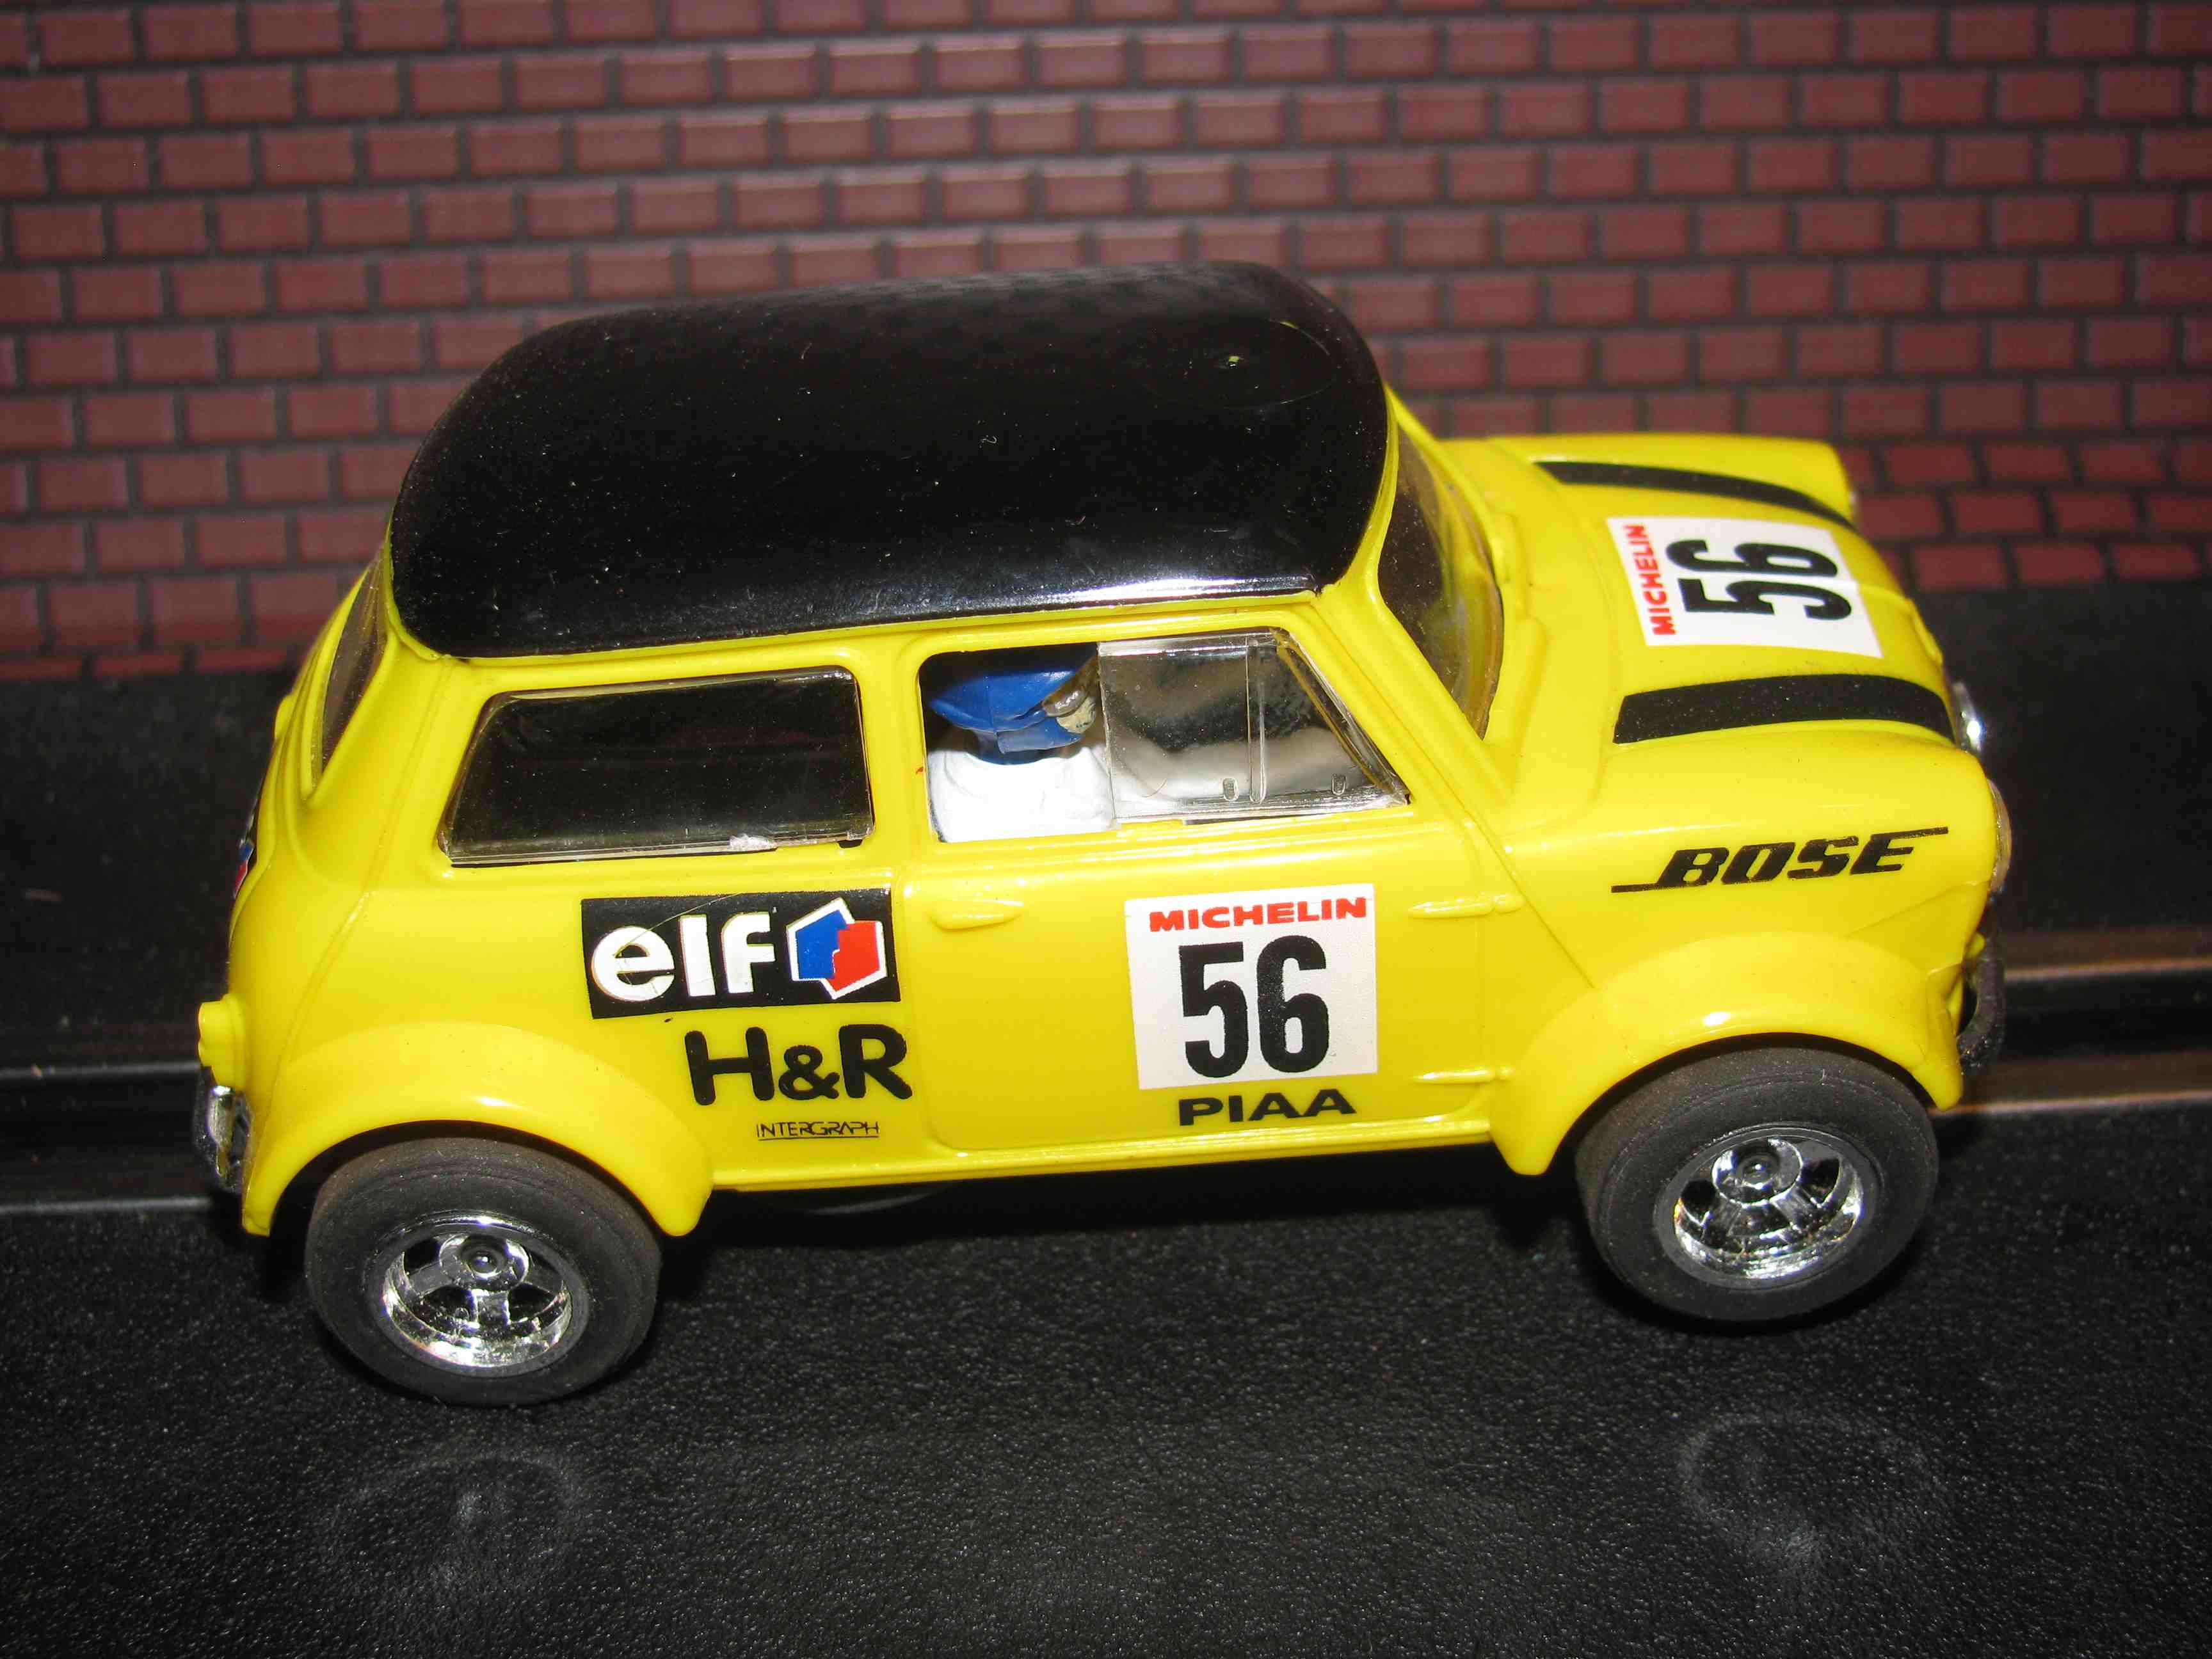 * SOLD * Hornby Mini Cooper Slot Car - Yellow - 1/32 Scale - Car #56 - Made in Great Britain